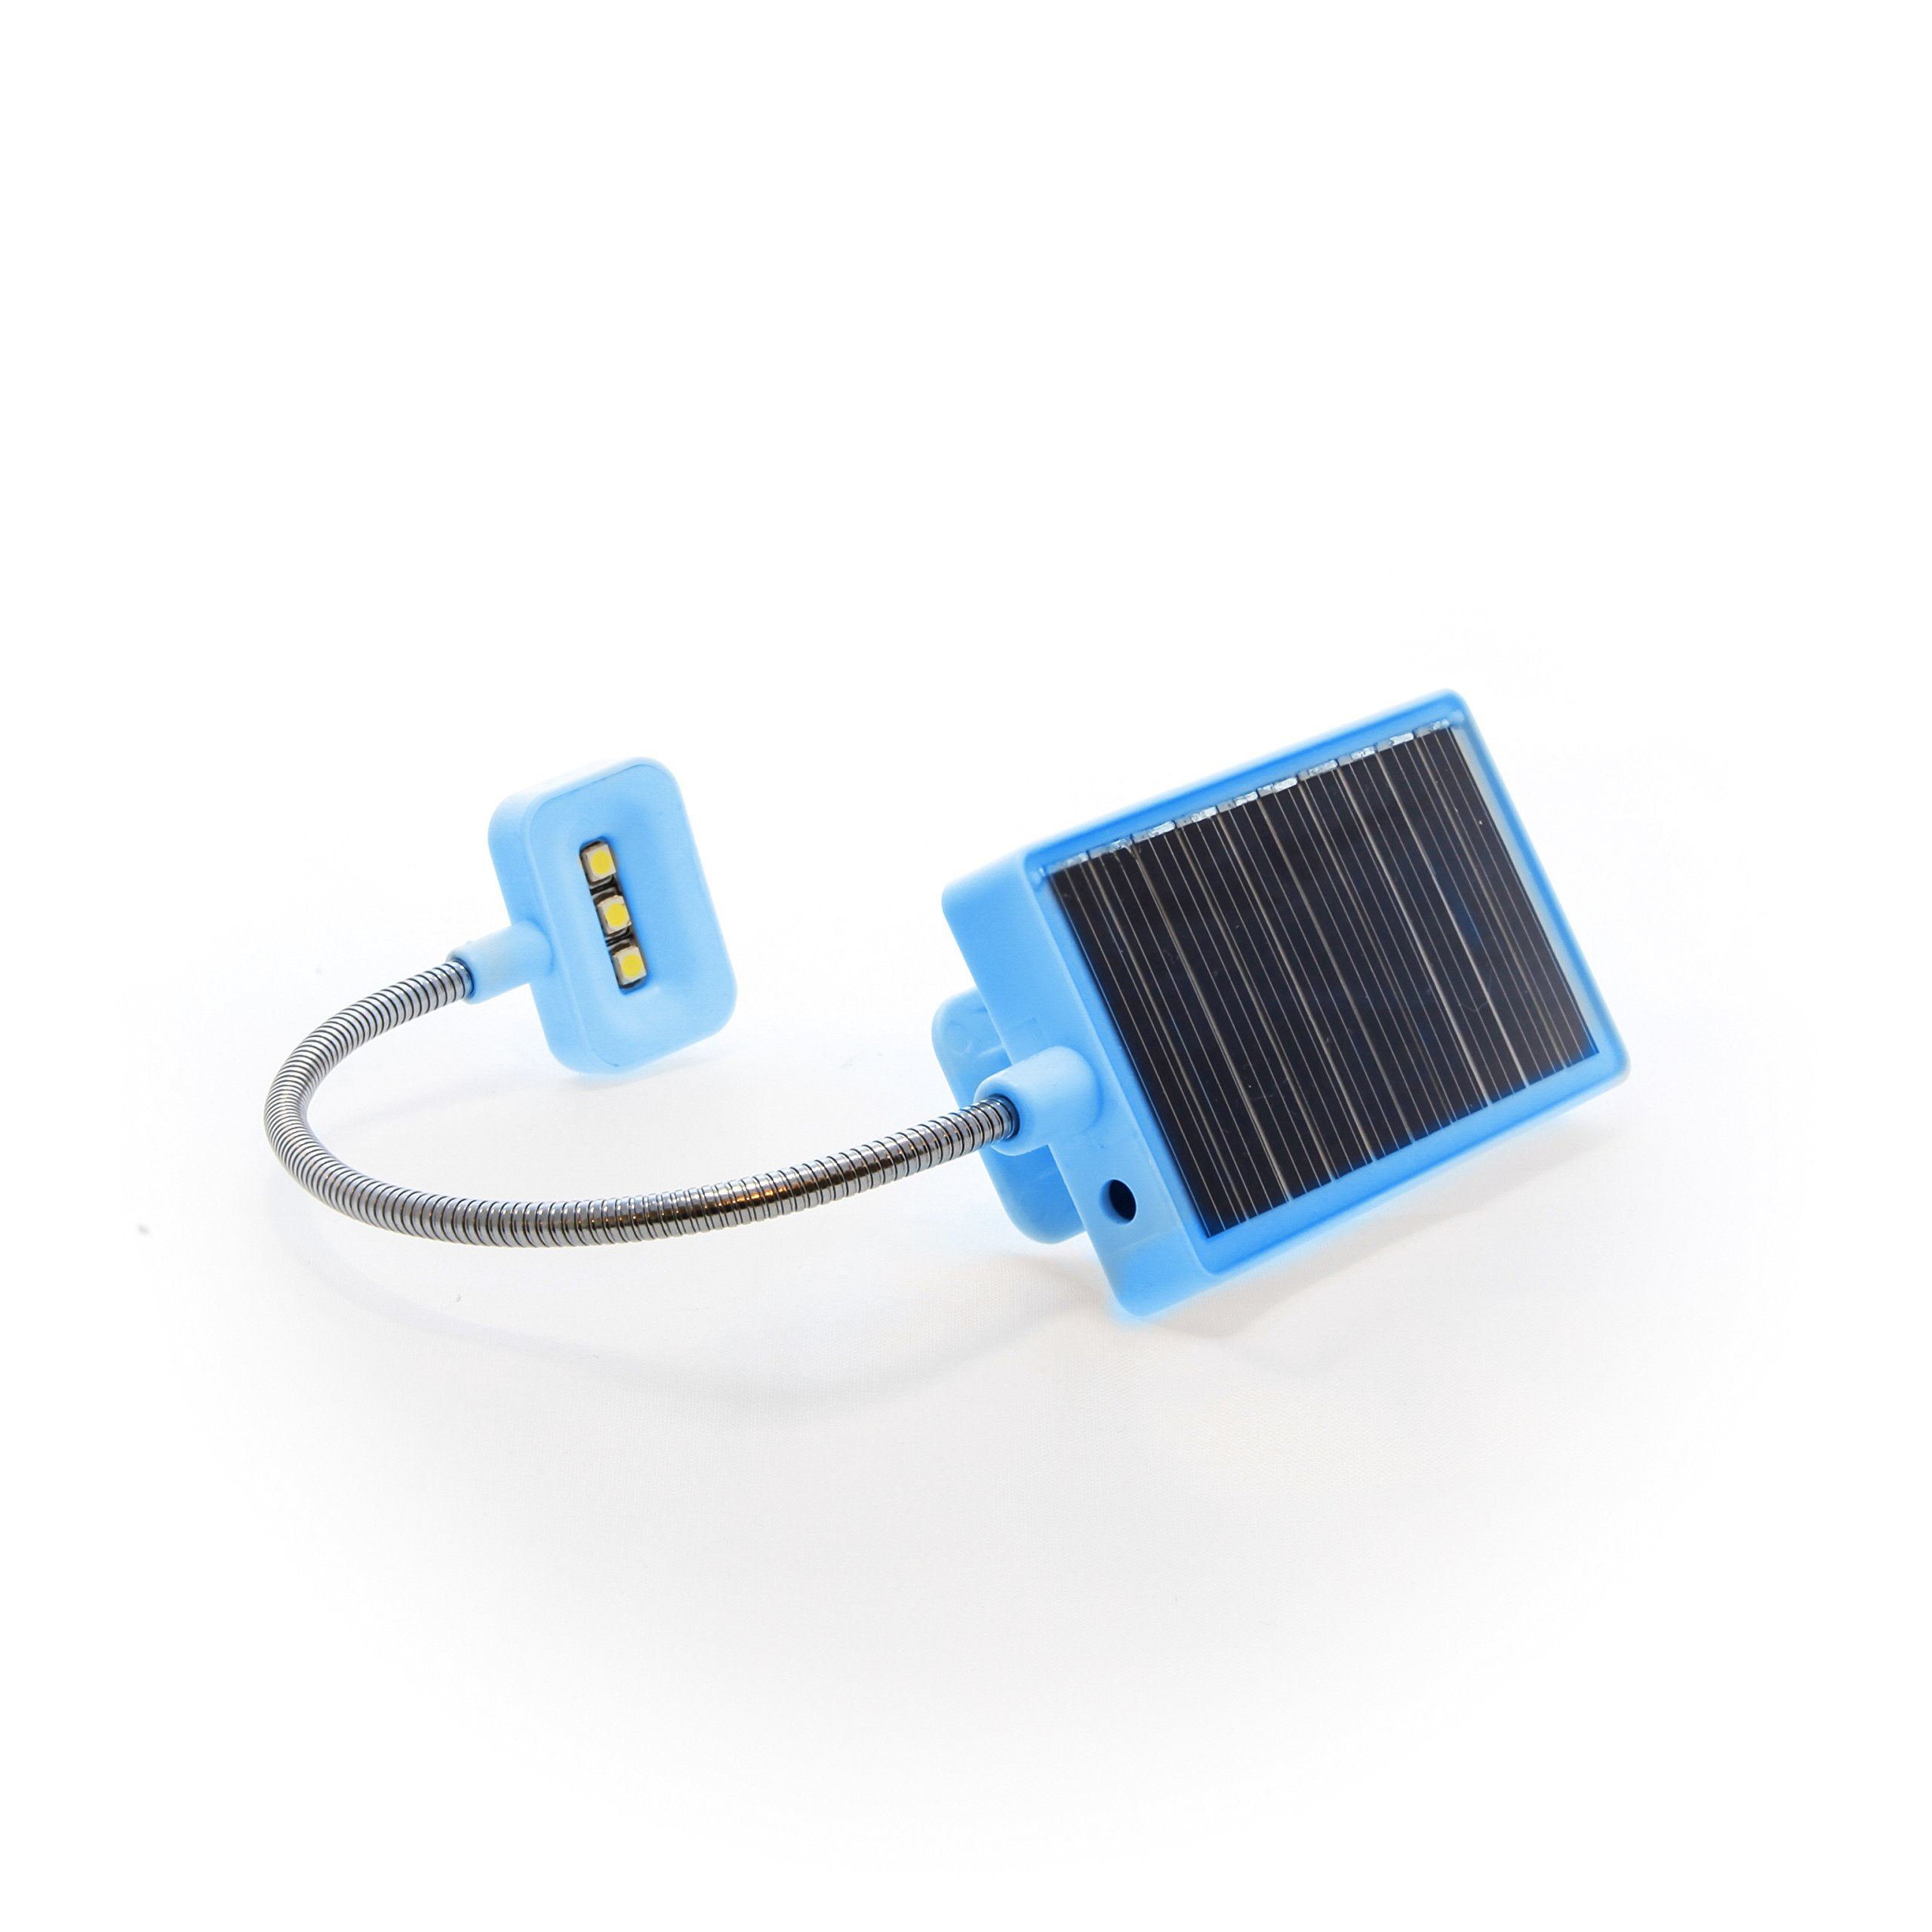 Solar Rechargeable Book Light Ideal for Reading in Bed - Solar or USB Rechargeable LED Clip-On Reading Light - 2 Light Settings Suitable for Bed Reading and Car Reading - Perfect for Kids (Blue)